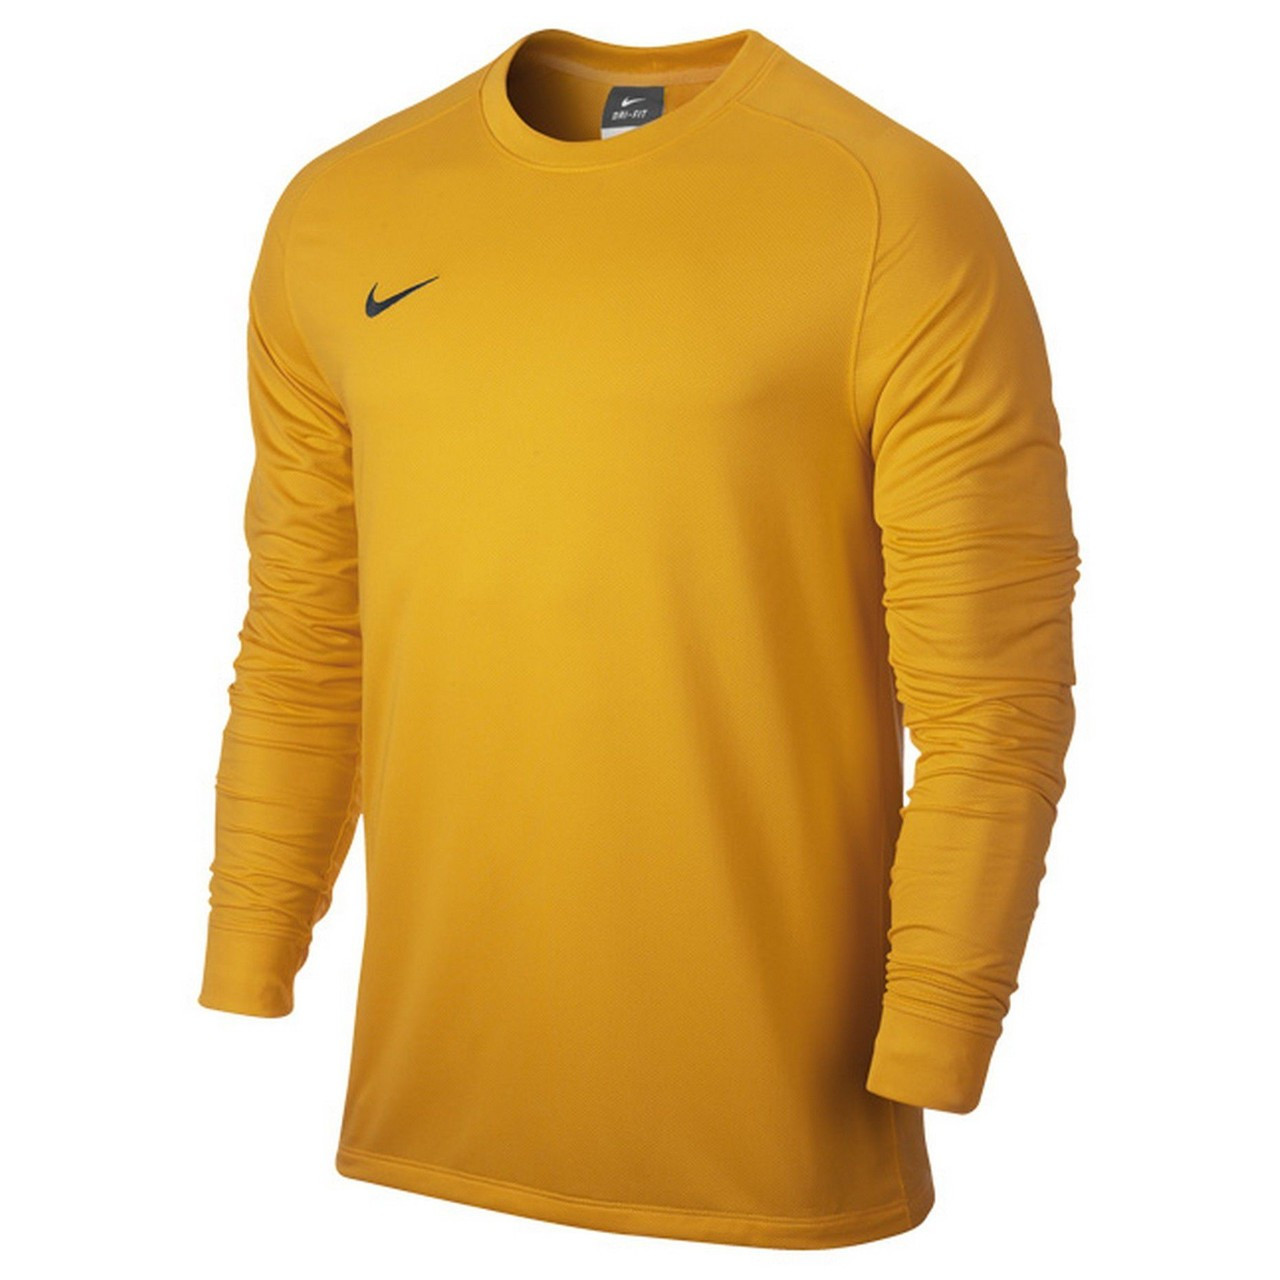 efc9a60e2 Nike LS Park II Youth Goalie Jersey - Gold - ohp soccer